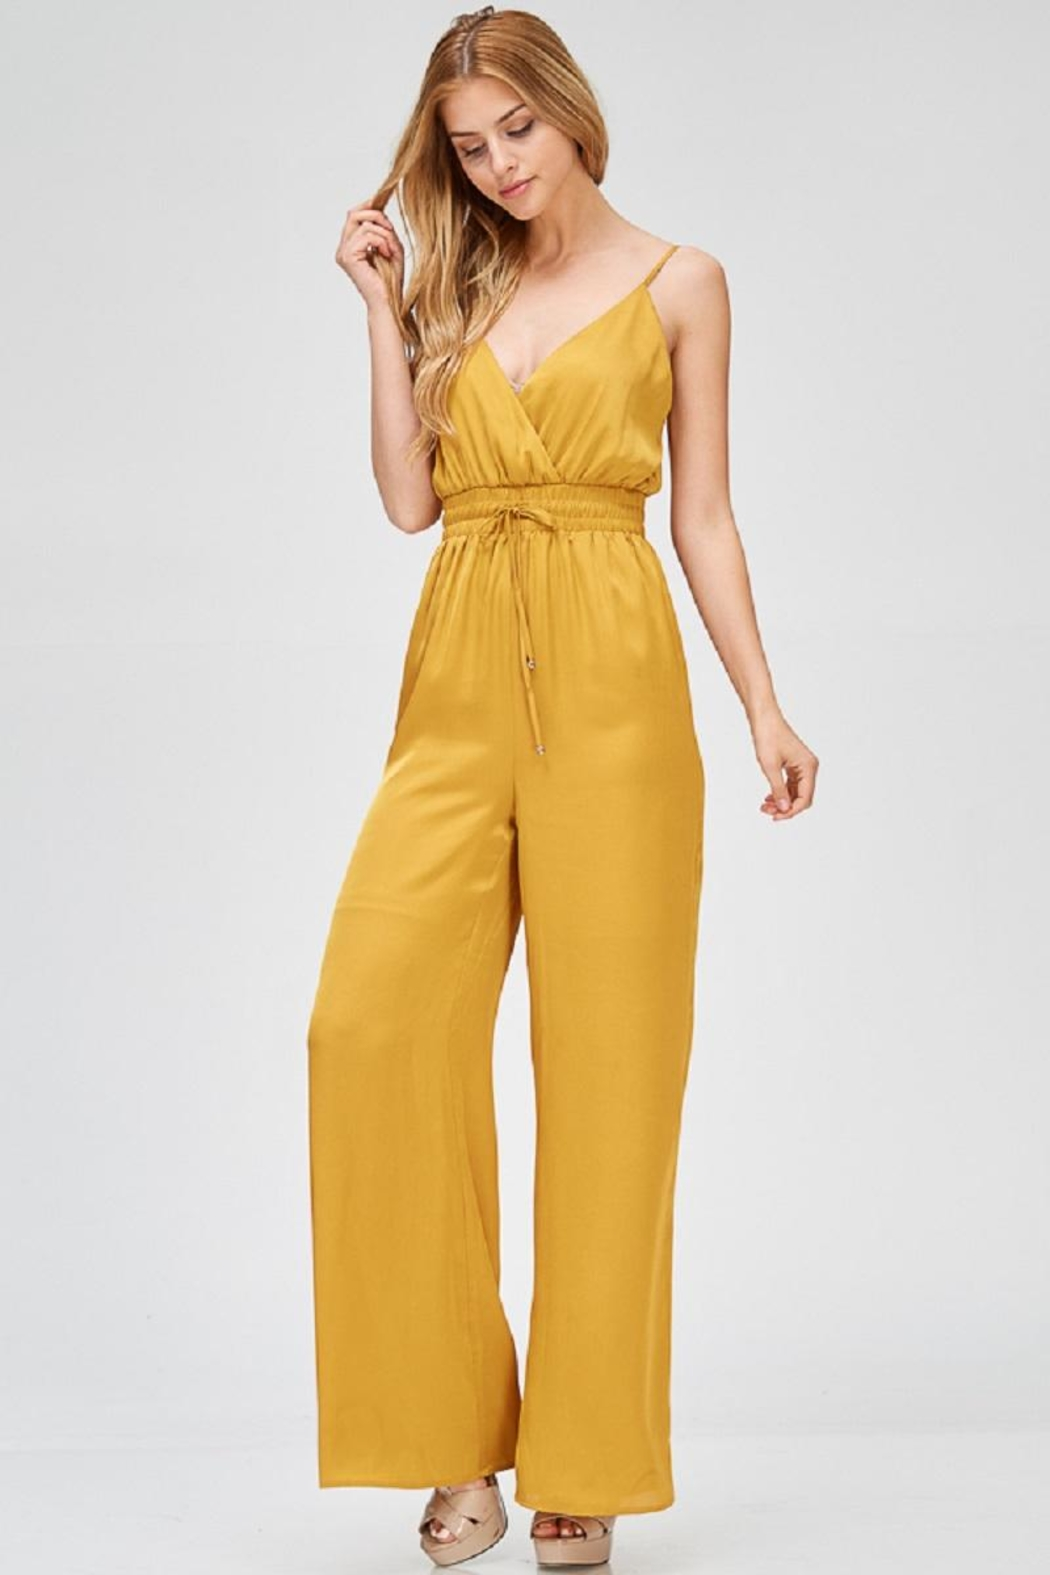 Evenuel Mustard Satin Jumpsuit - Main Image